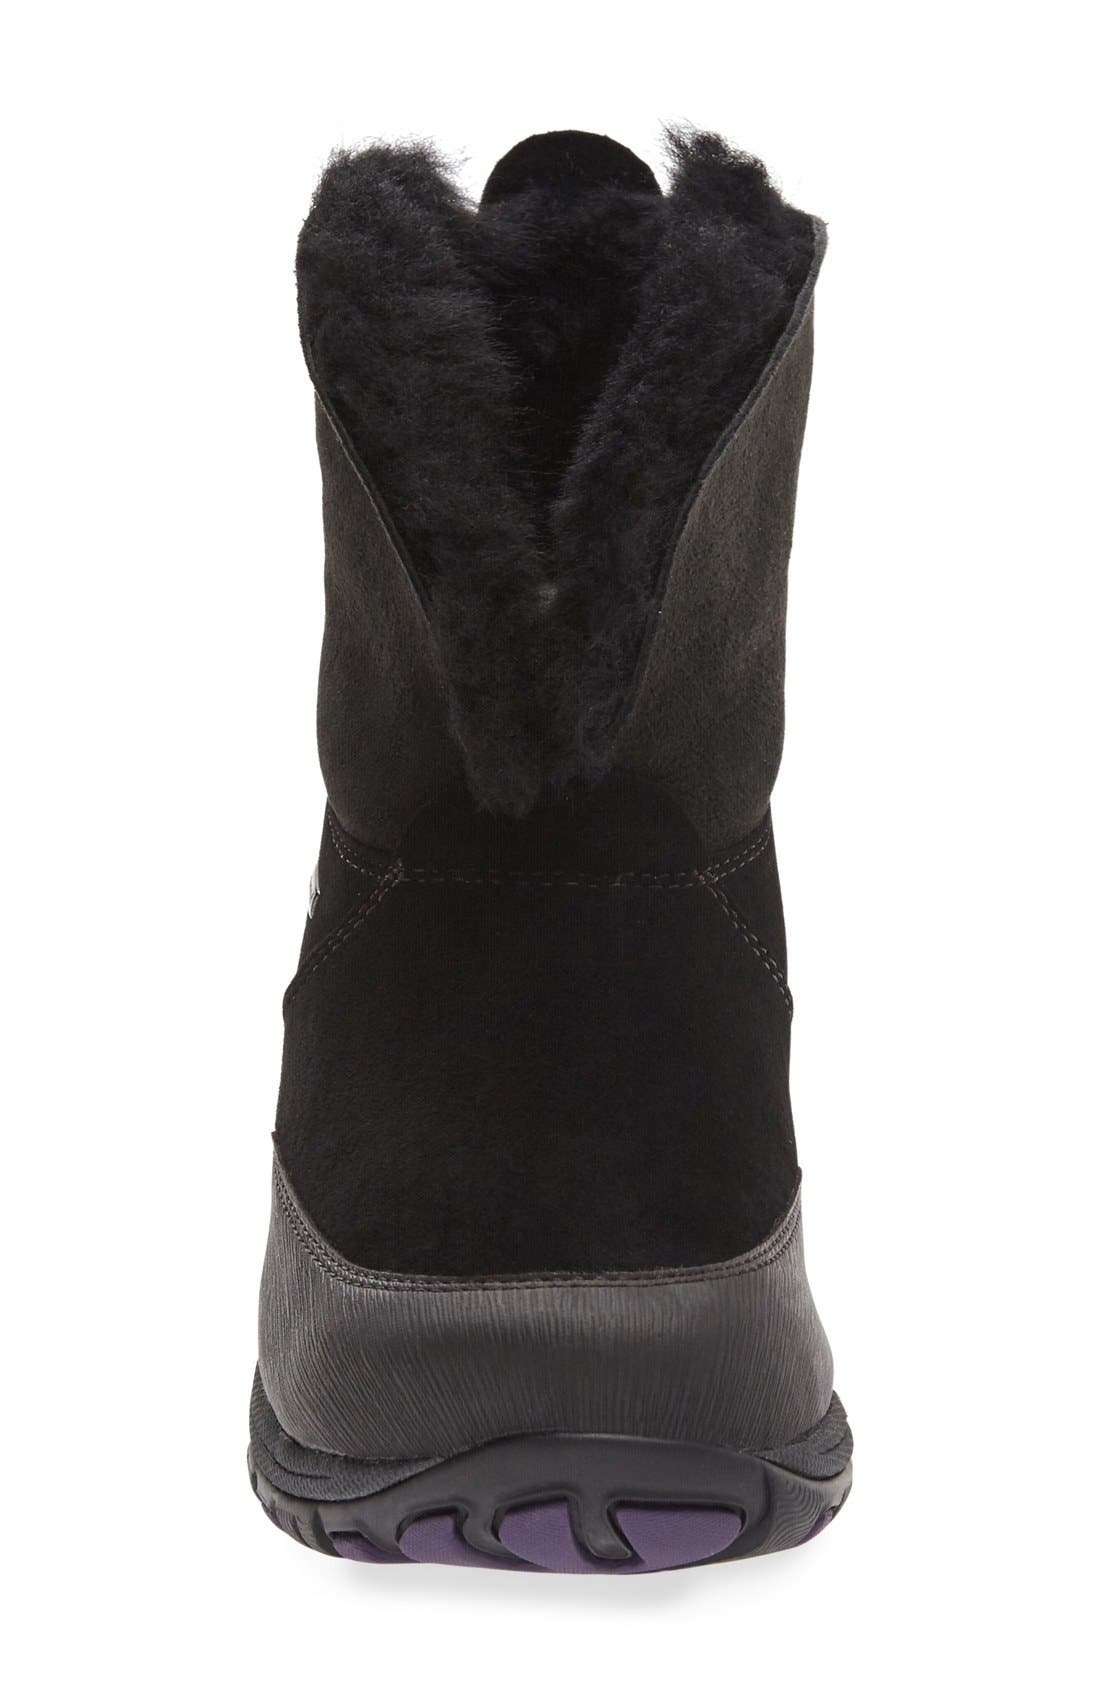 Priscilla Genuine Shearling Waterproof Bootie,                             Alternate thumbnail 3, color,                             Black Suede